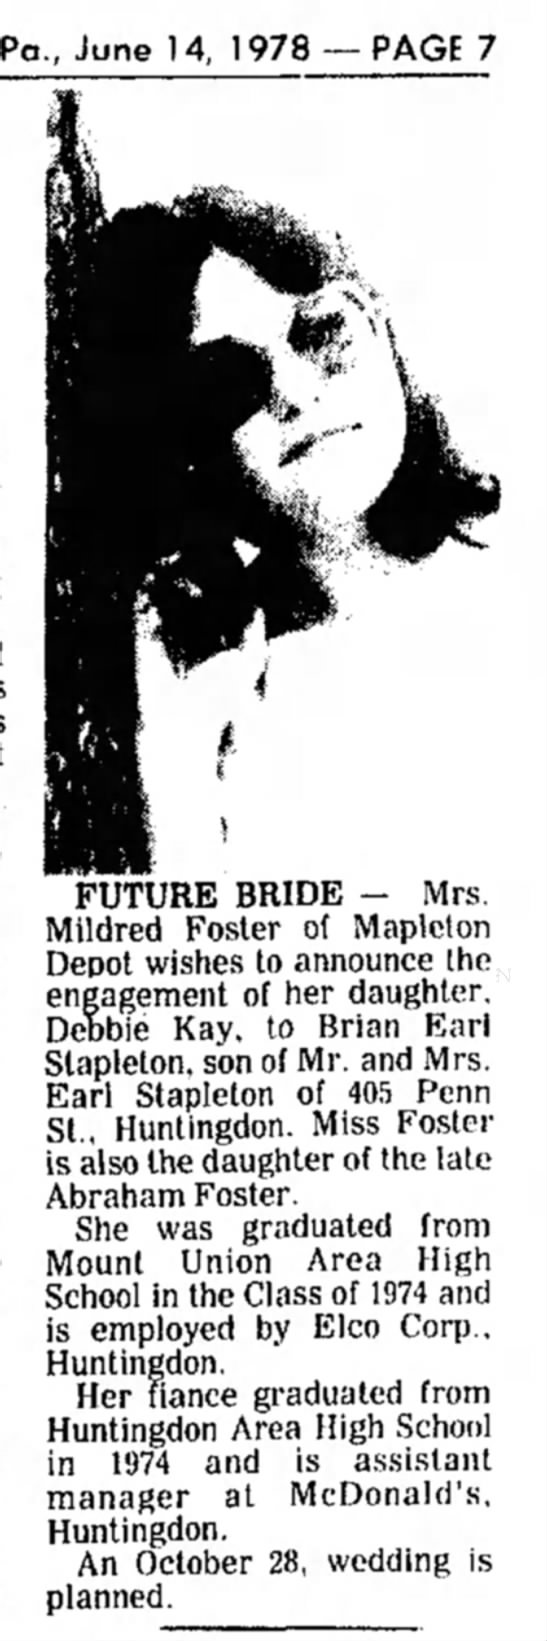 Debbie Kay Foster engagement-TDN-p.7-14 Jun 1978